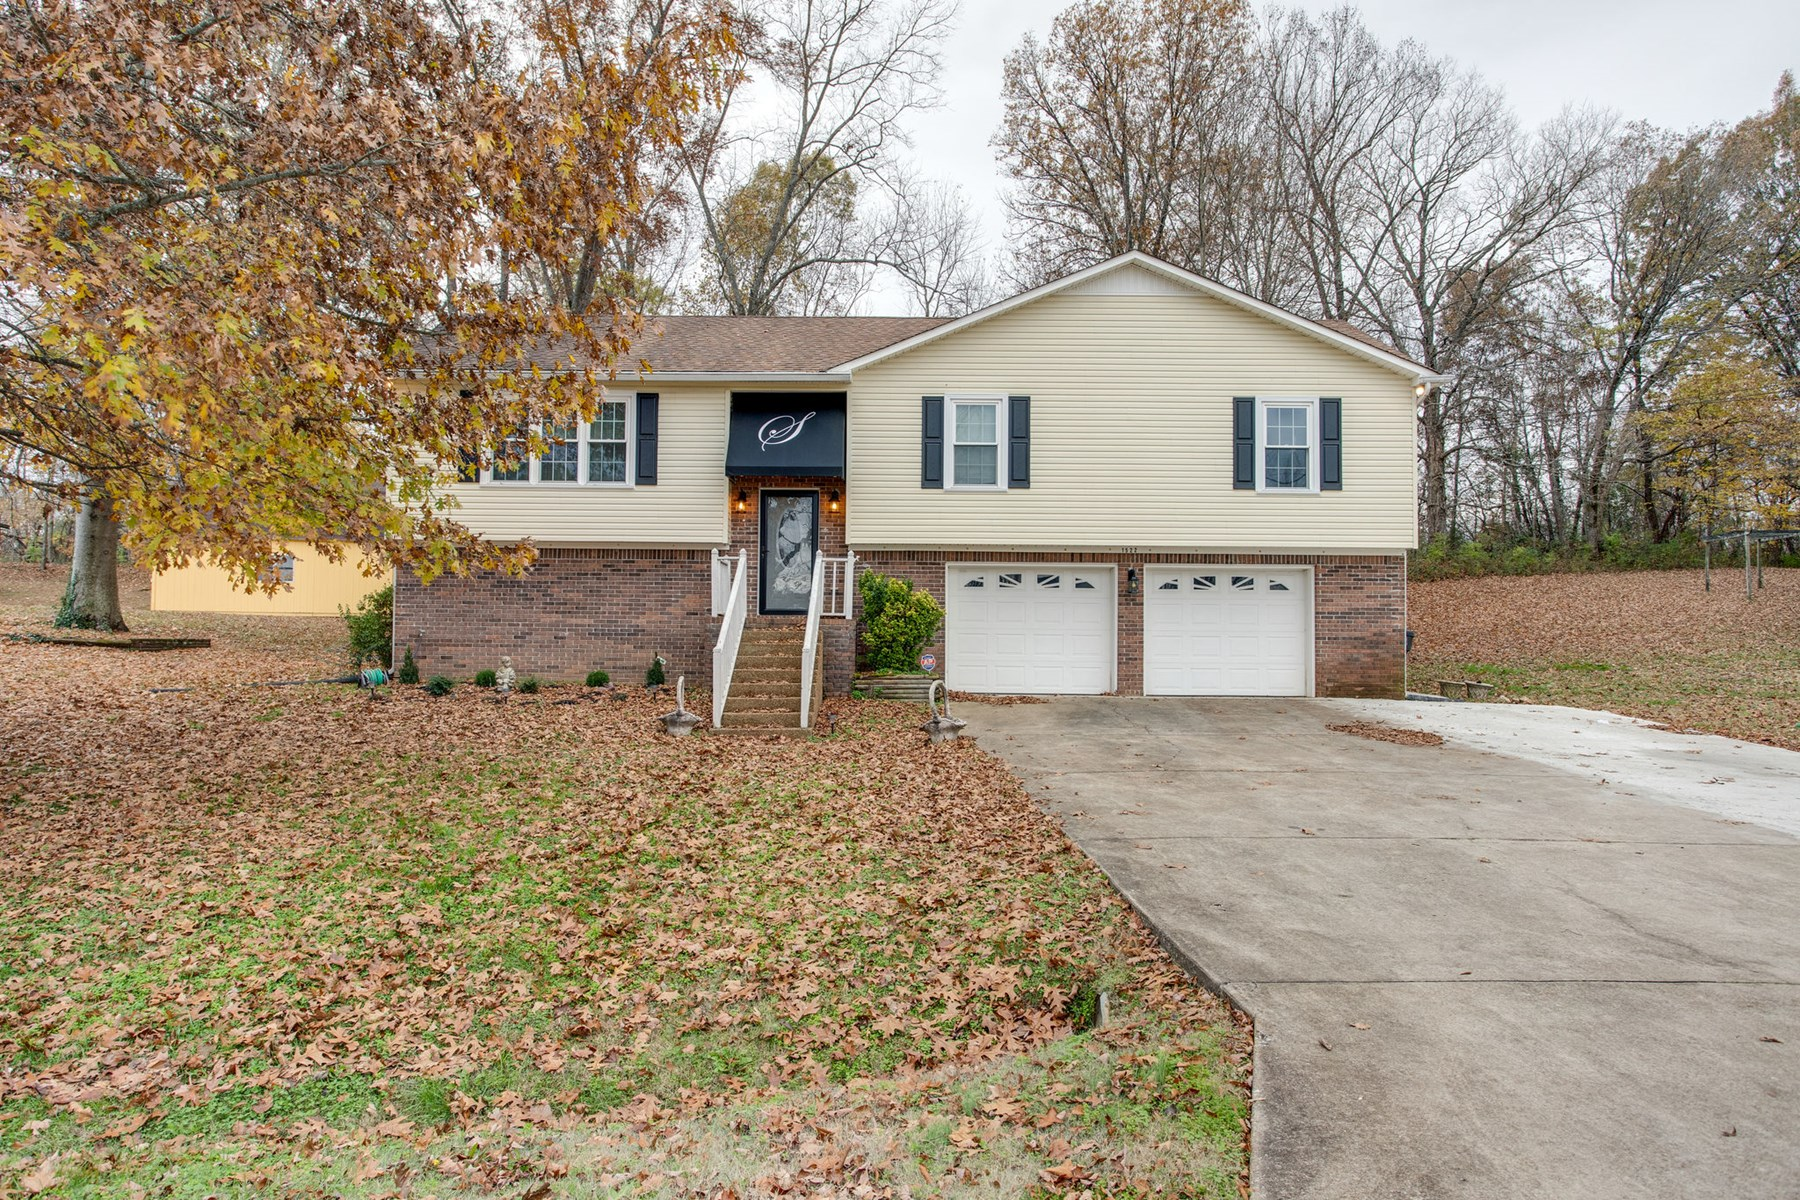 Columbia, Tennessee Maury County Home close to Town for Sale